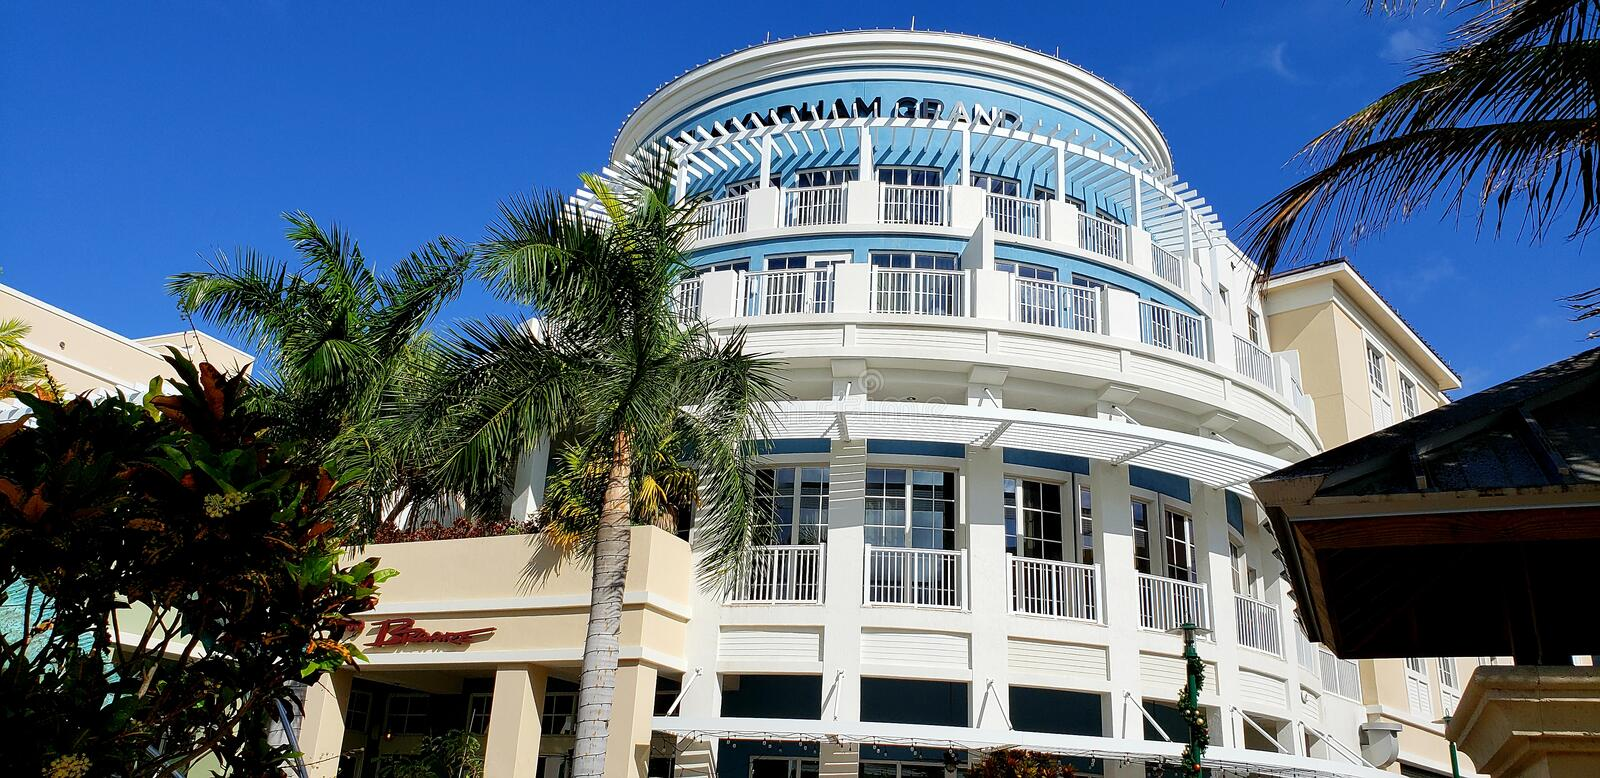 Wyndham Grand Jupiter lizenzfreie stockbilder